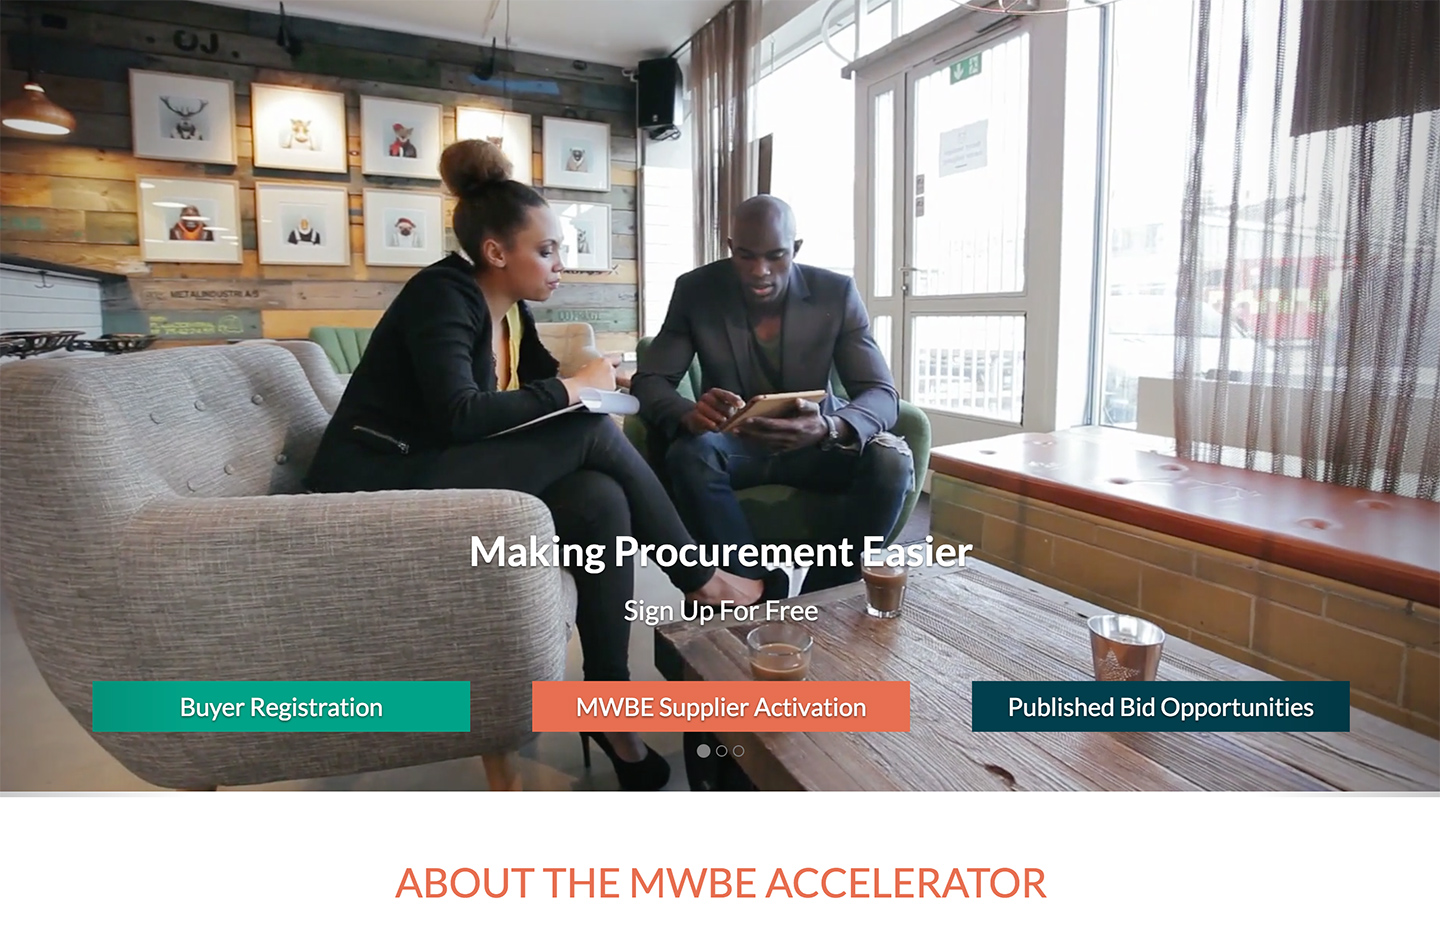 Harlem Commonwealth Council MWBE Accelerator